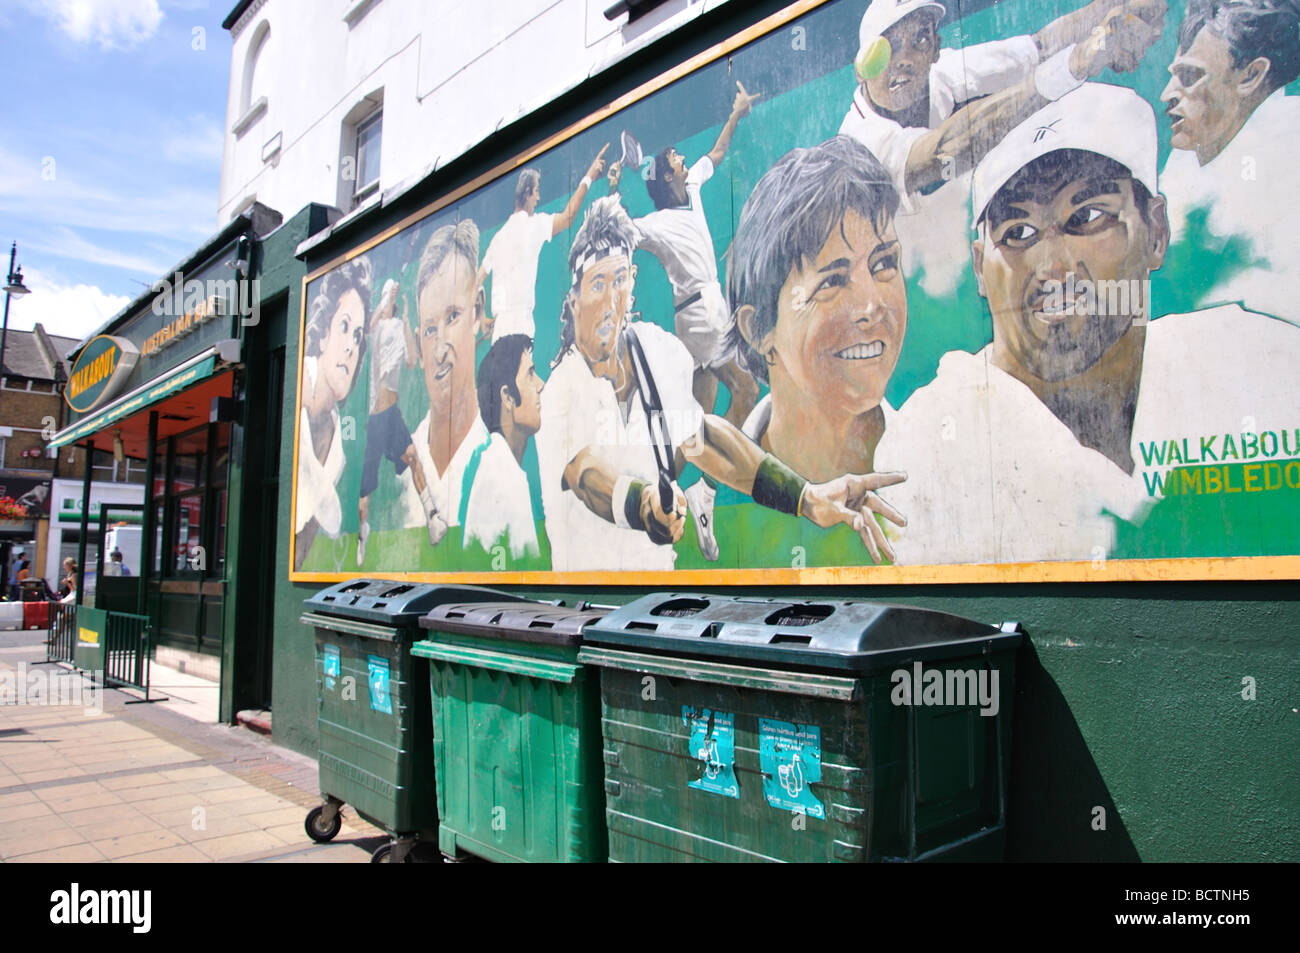 Tennis legends mural, Walkabout Club, The Broadway, Wimbledon, Greater London, England, United Kingdom - Stock Image